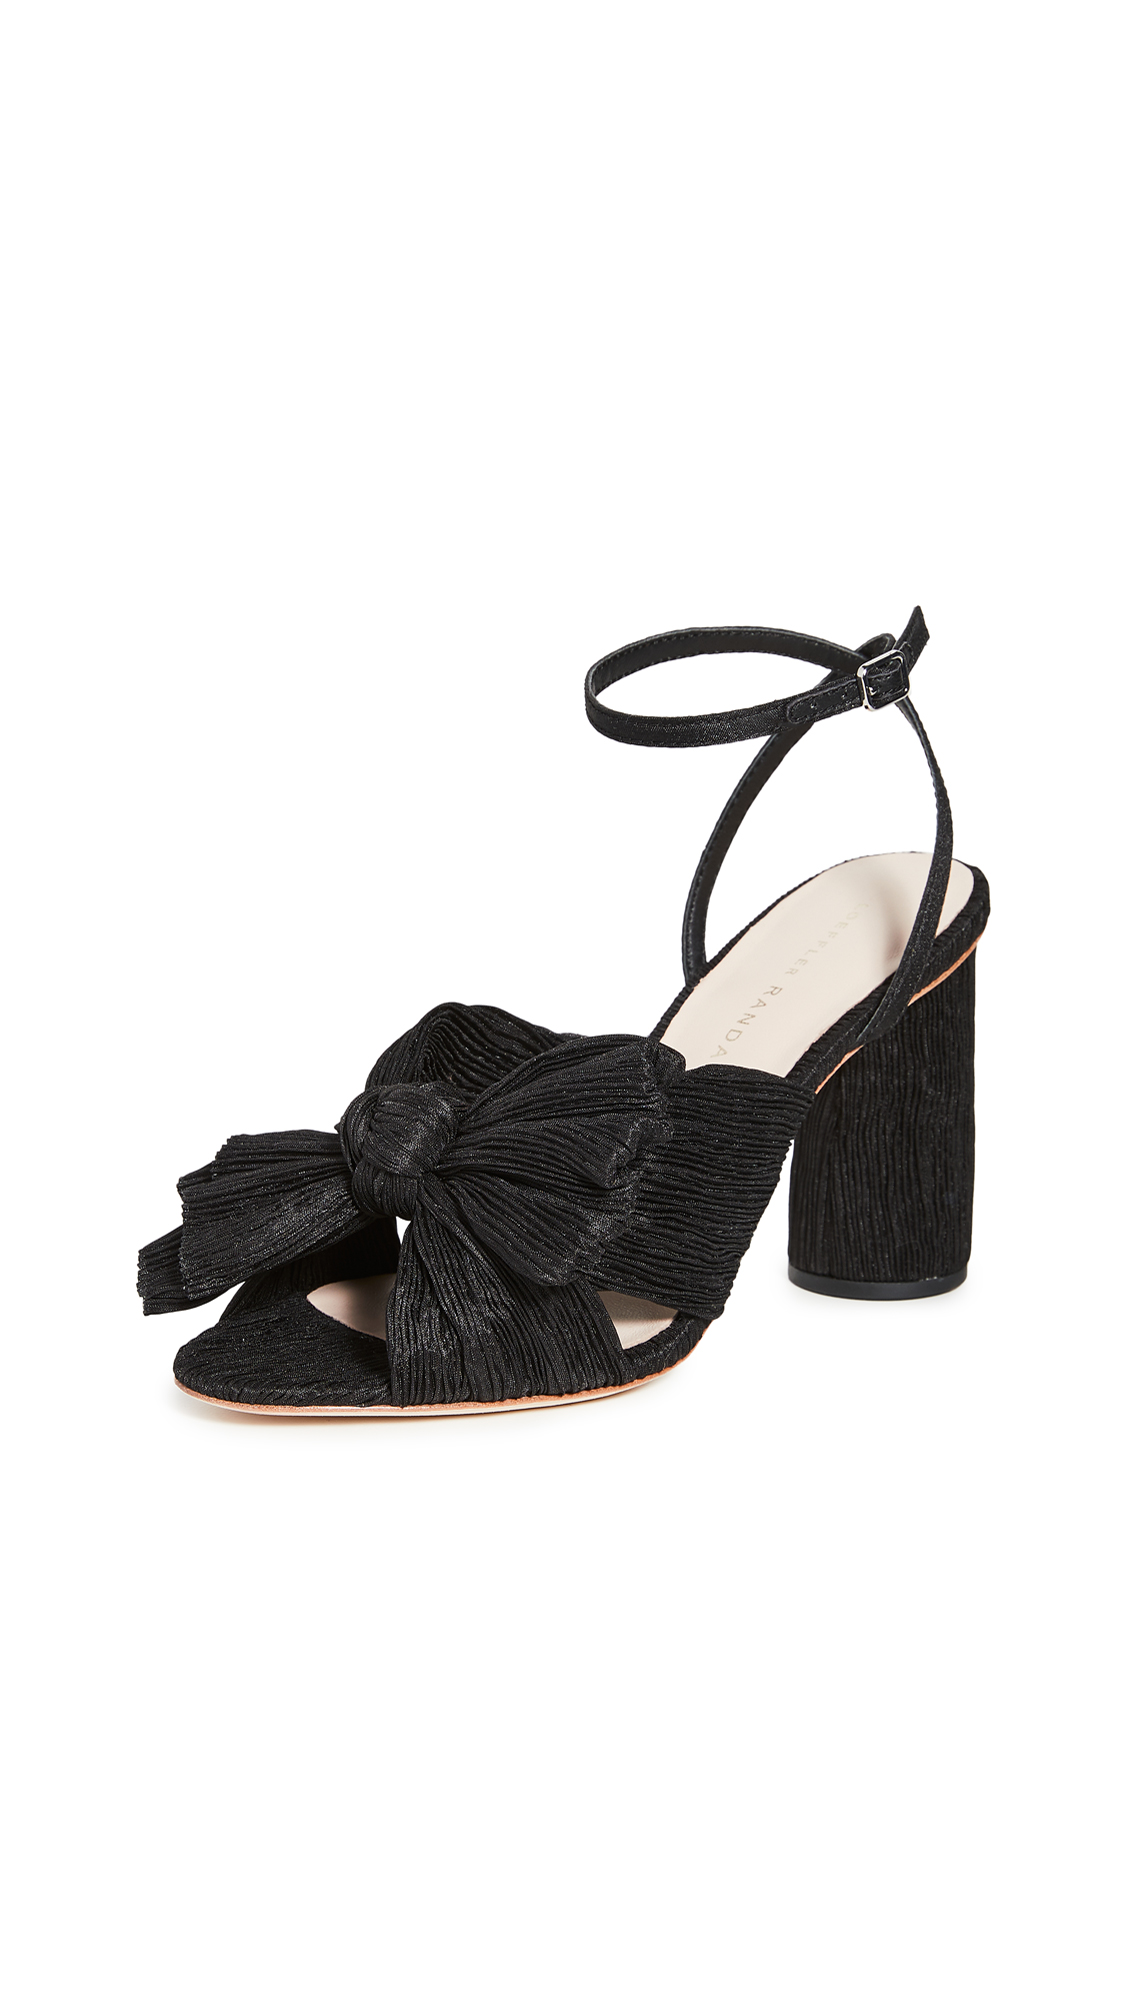 Loeffler Randall Camellia Knot Mule with Ankle Strap - 30% Off Sale